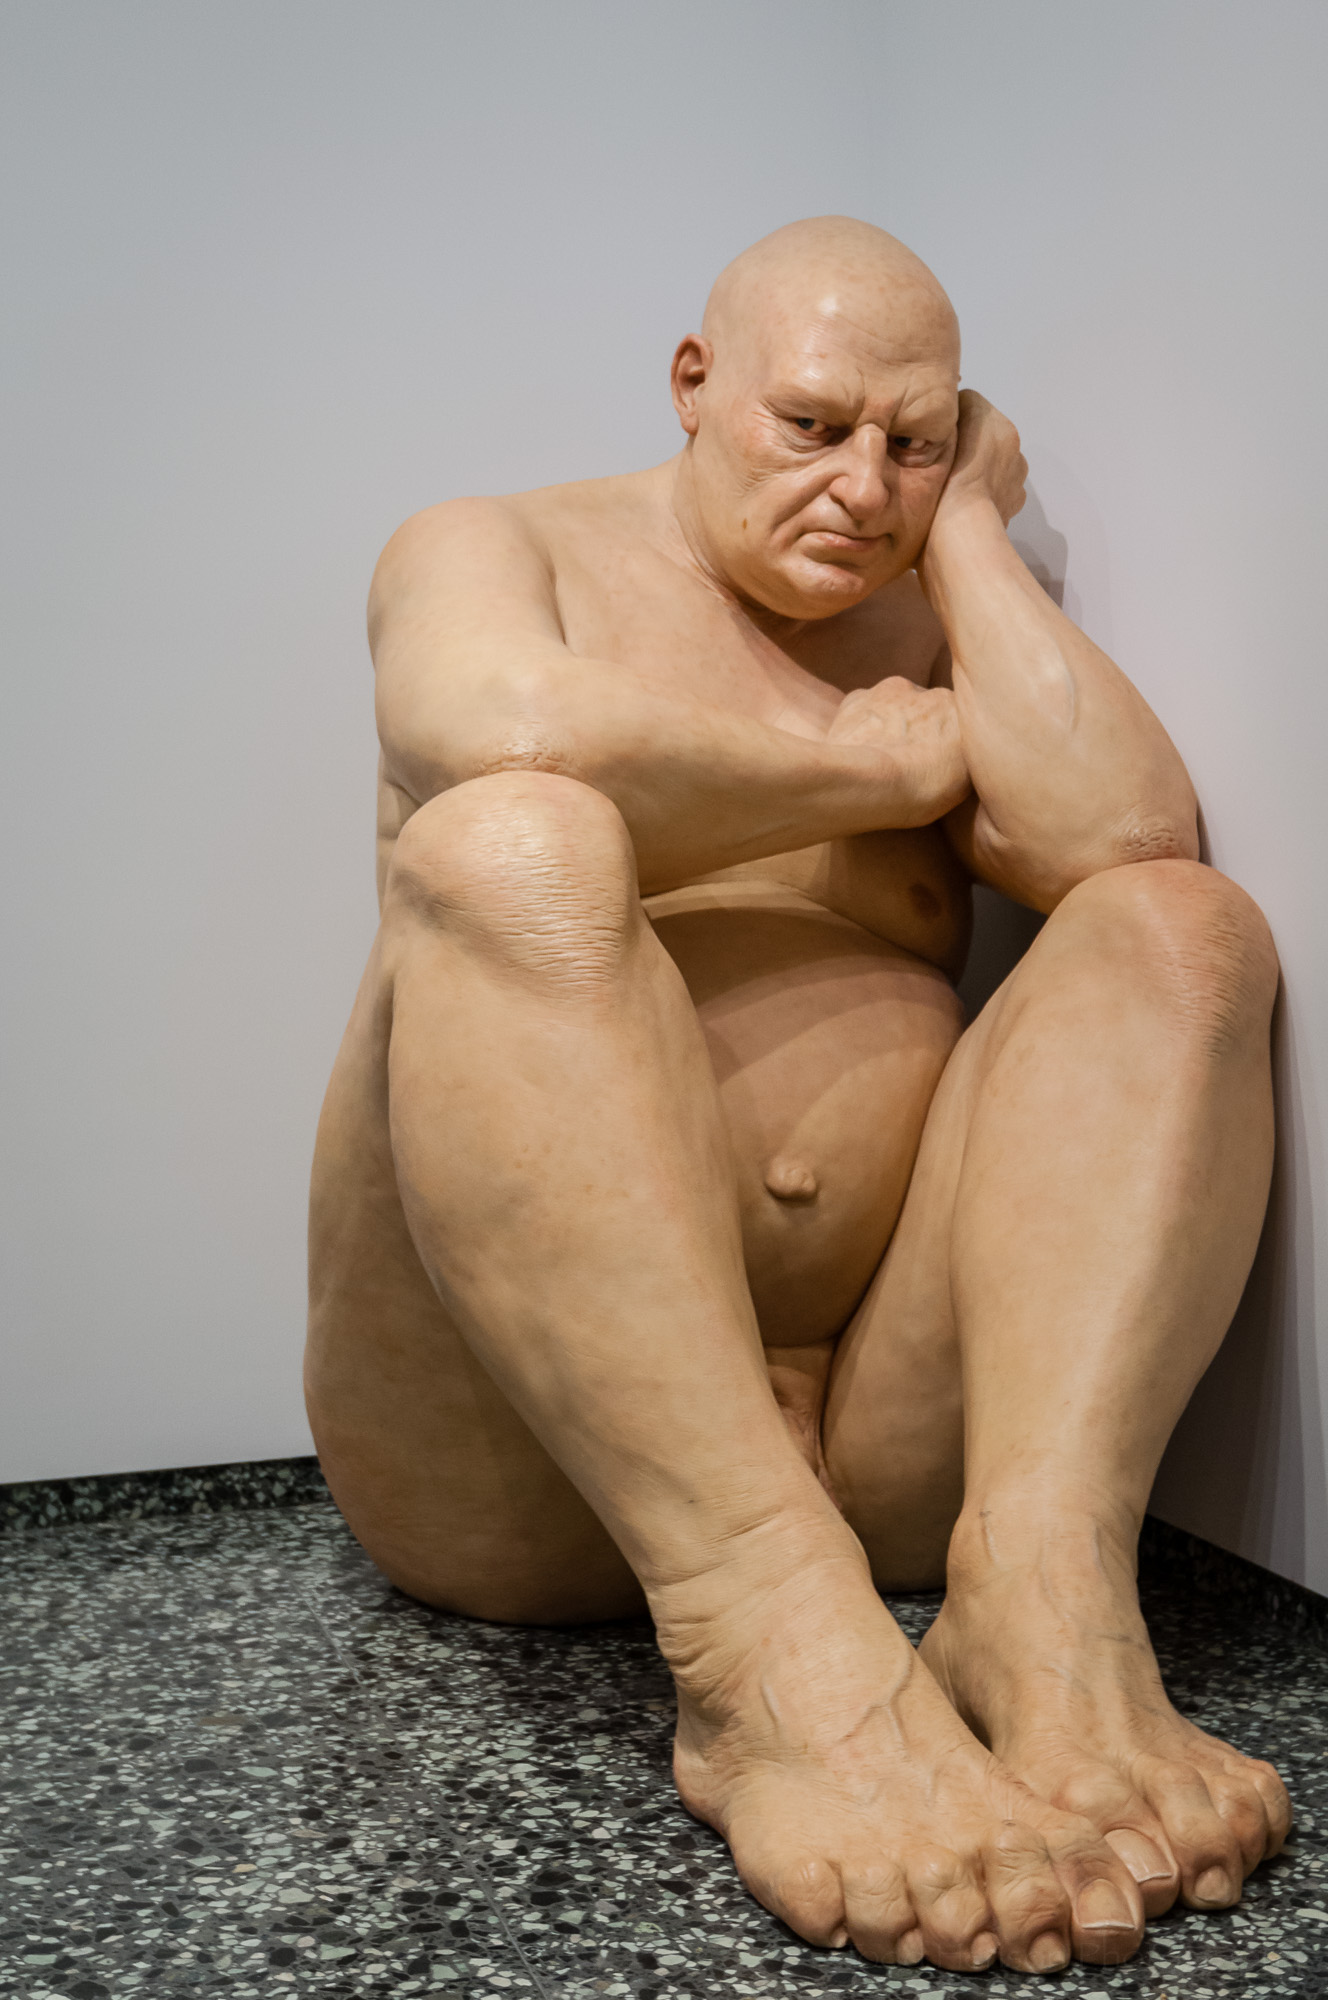 Untitled (Big Man) sculpture by Ron Meuck in the Smithsonian Hirshhorn Museum